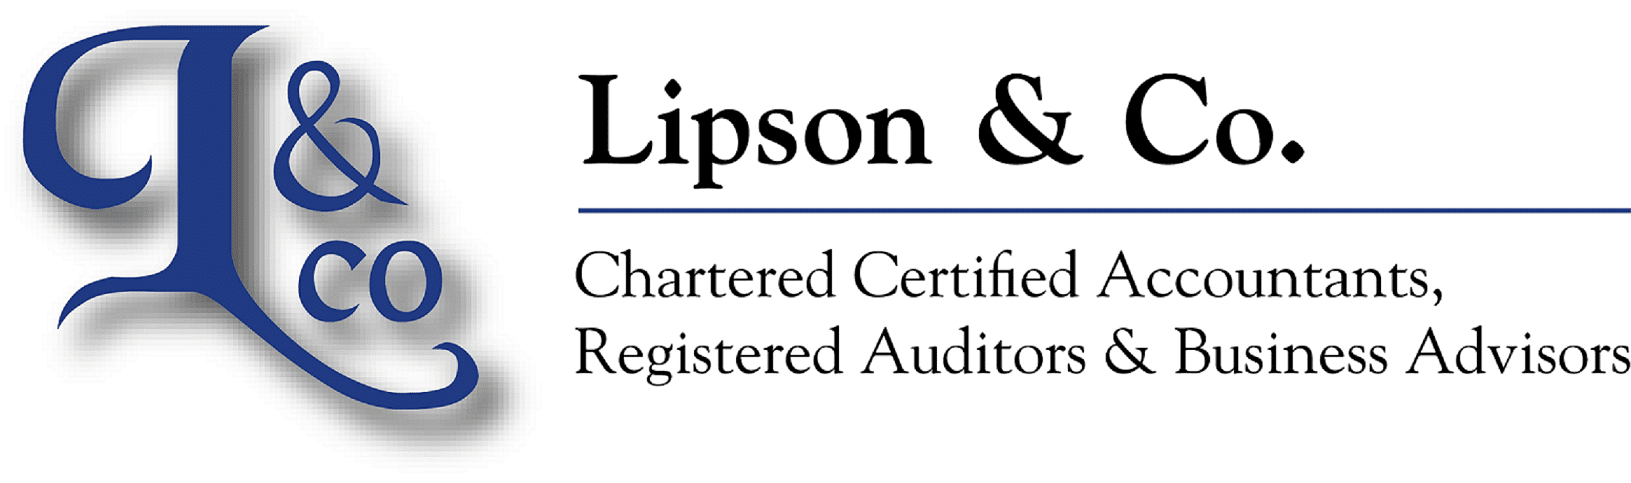 Lipson & Co. Chartered Certified Accountants